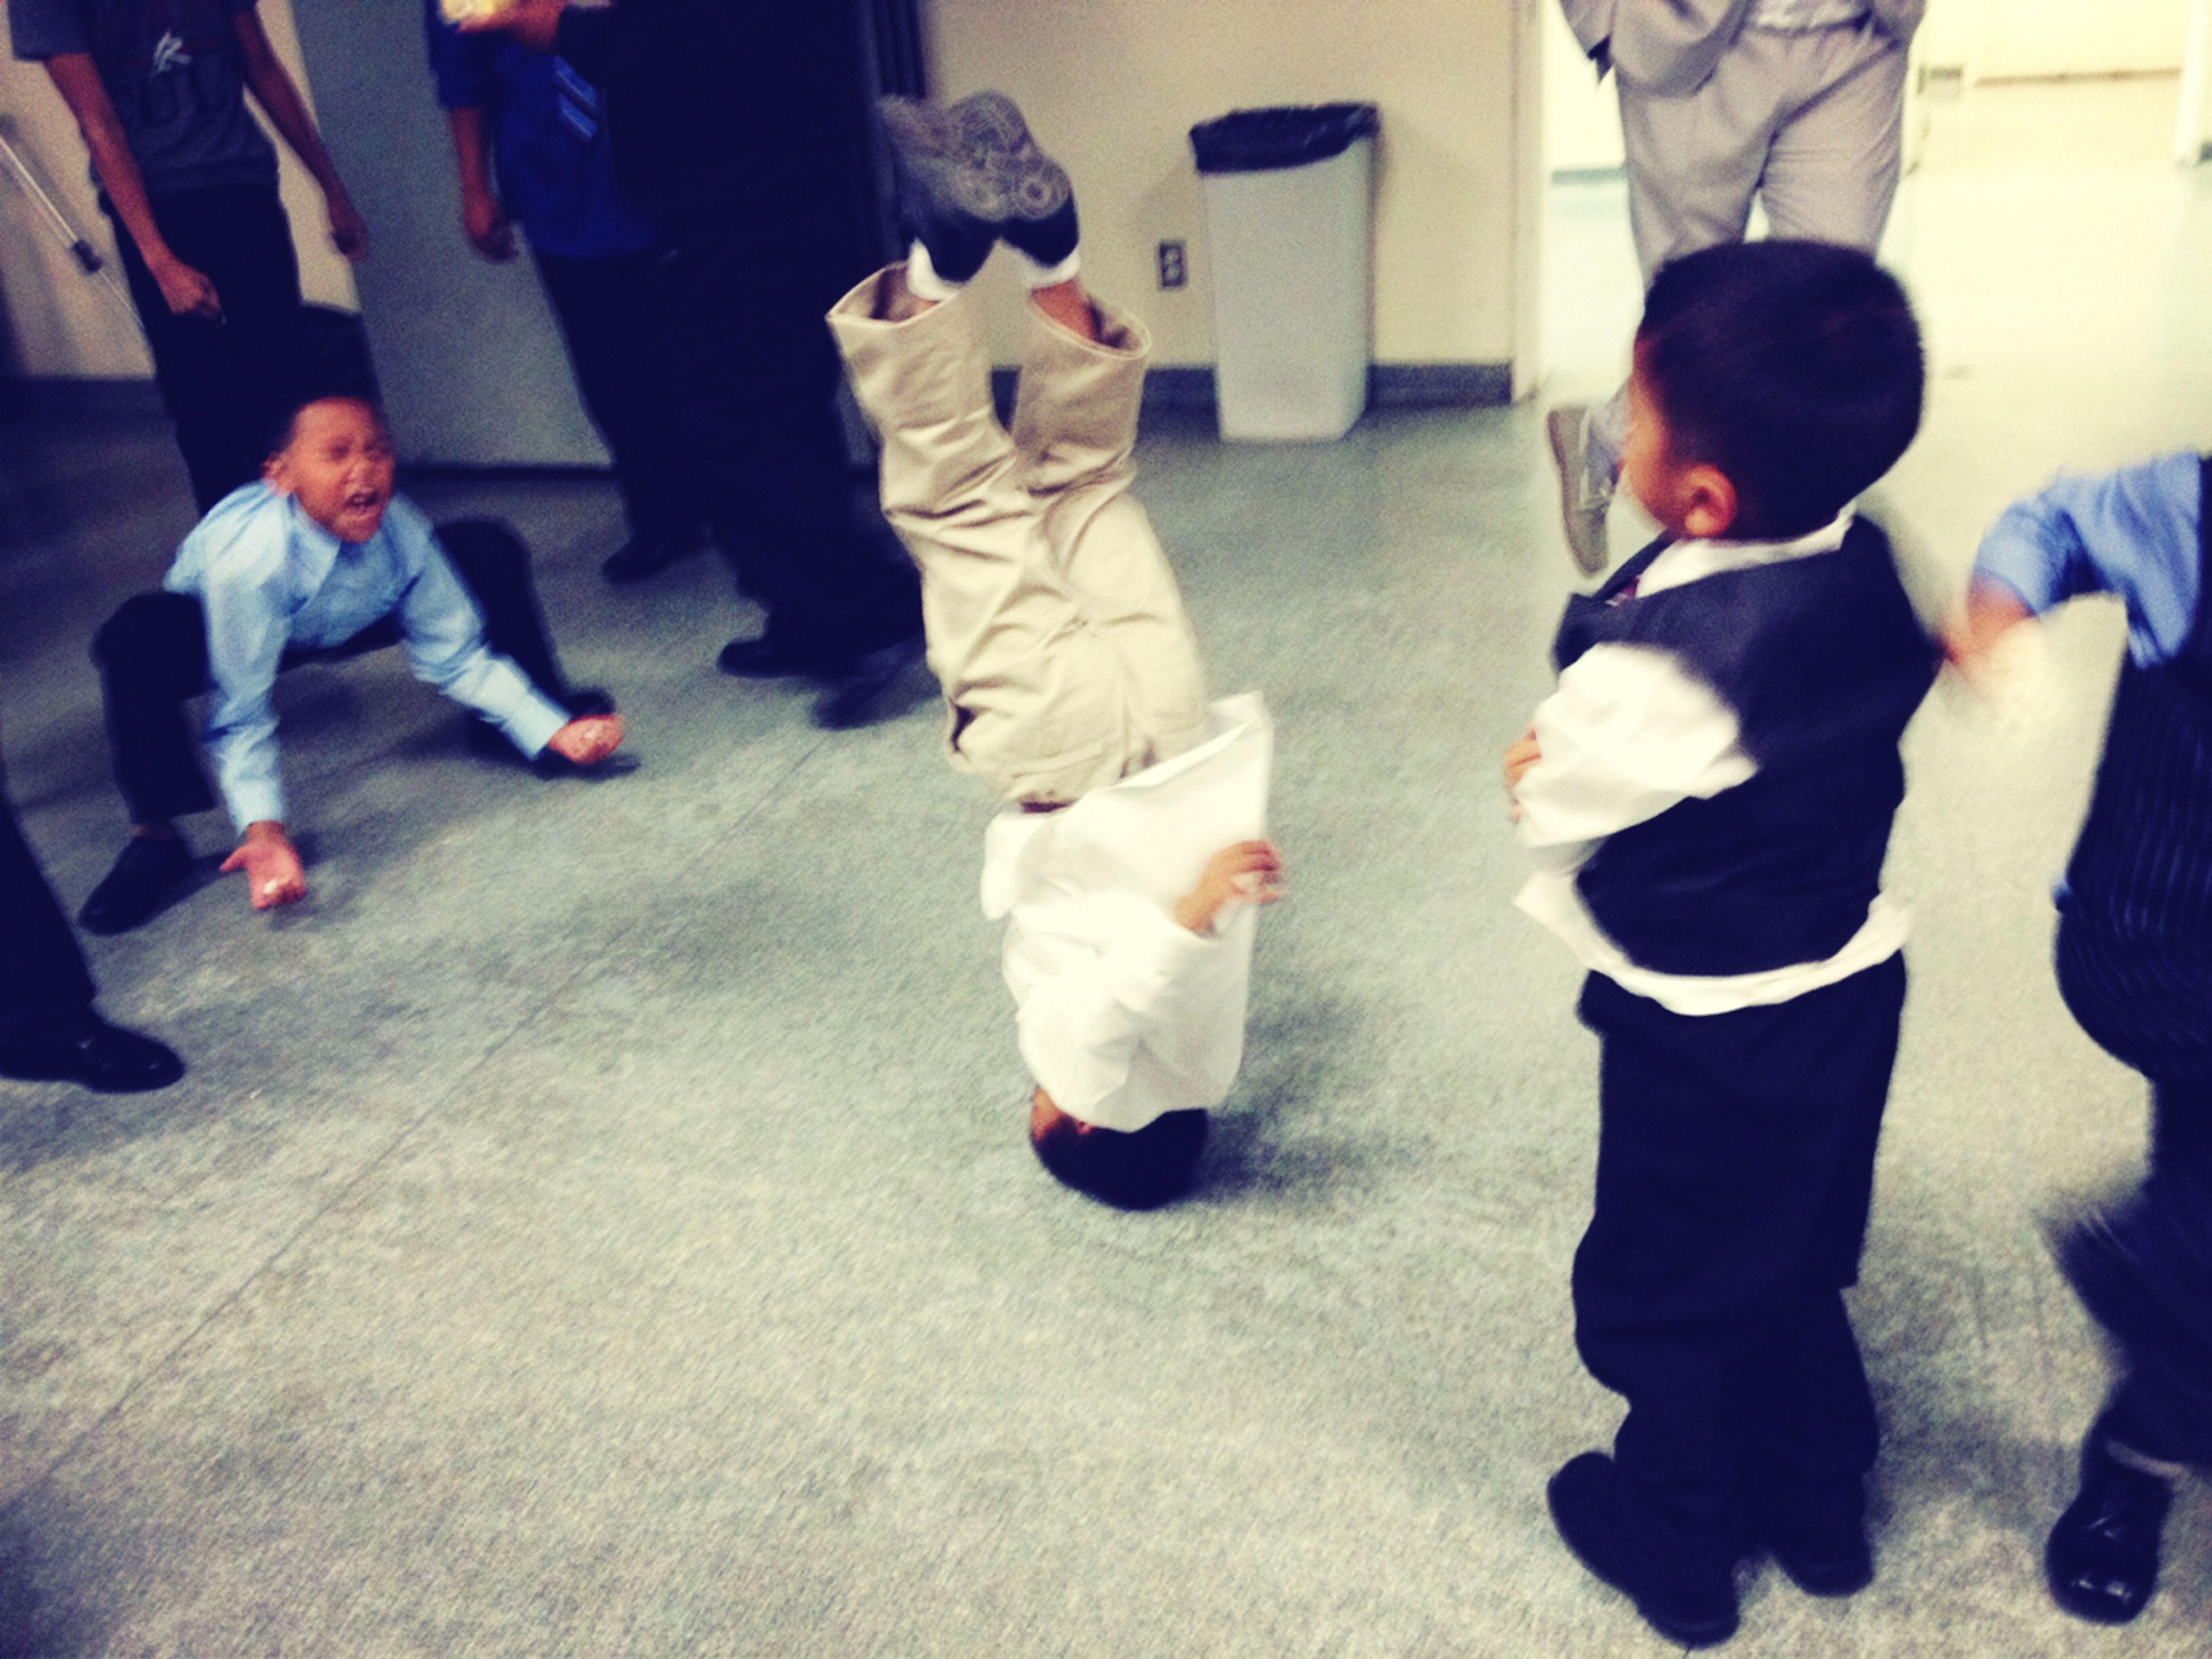 Lil Nephews going dumb at my cousin's wedding reception. #breakdancing